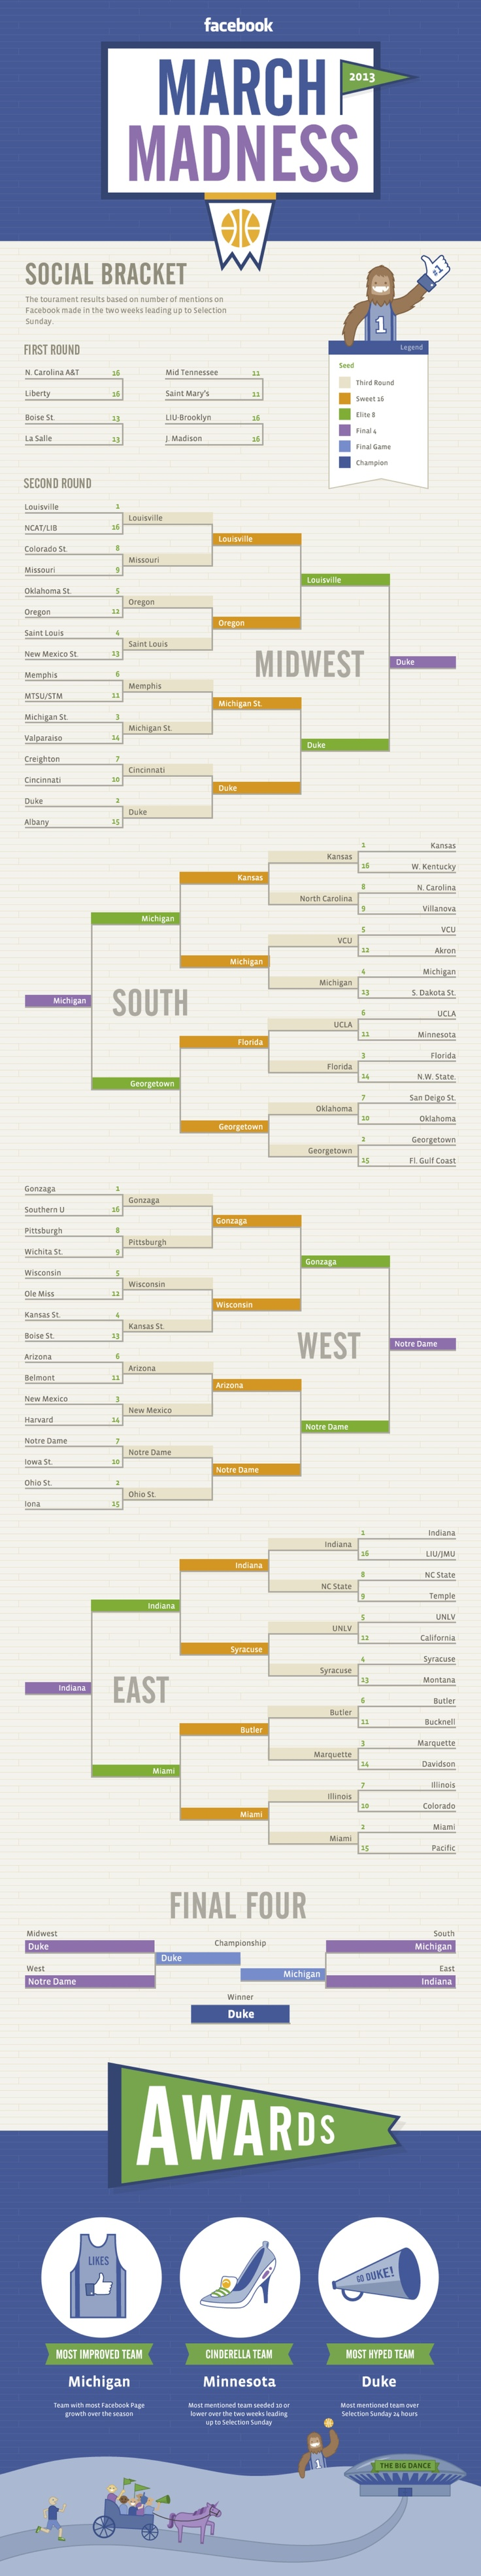 This infographic shows how March Madness would play out if teams advanced according to who has the most buzz on Facebook.